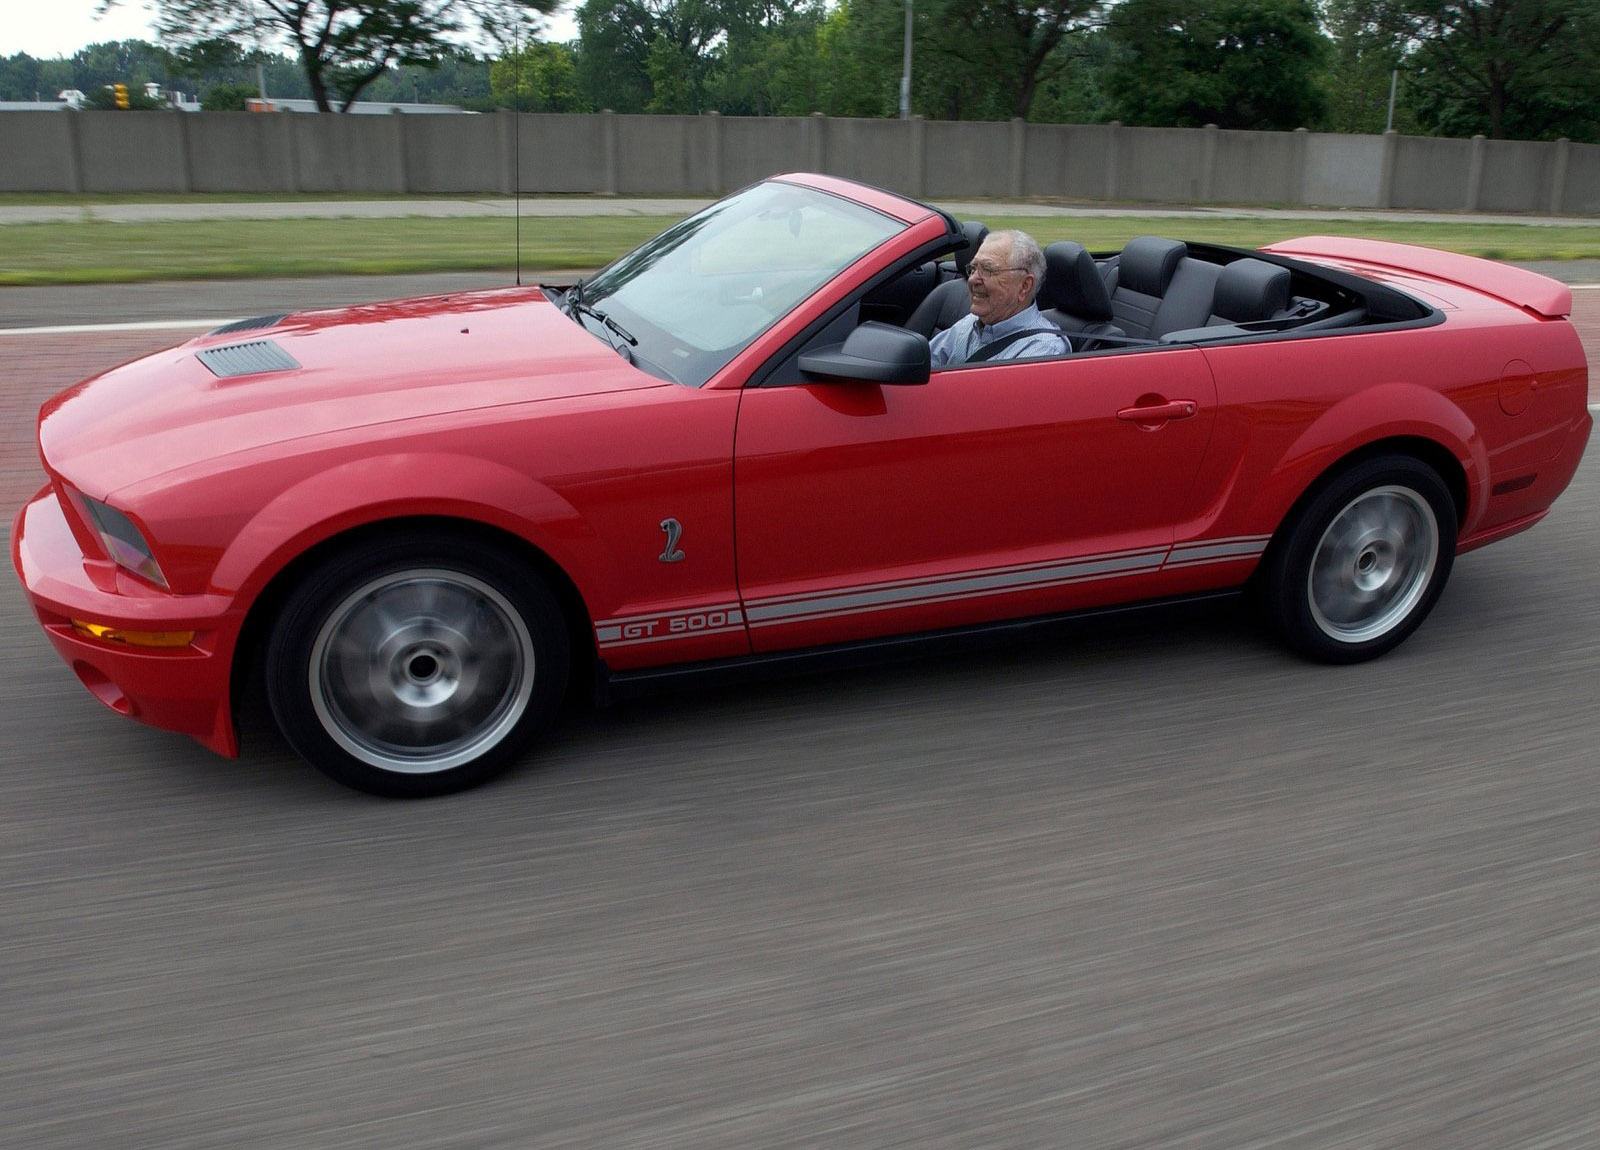 2007 Shelby Ford Mustang GT500 Convertible - HD Pictures ...